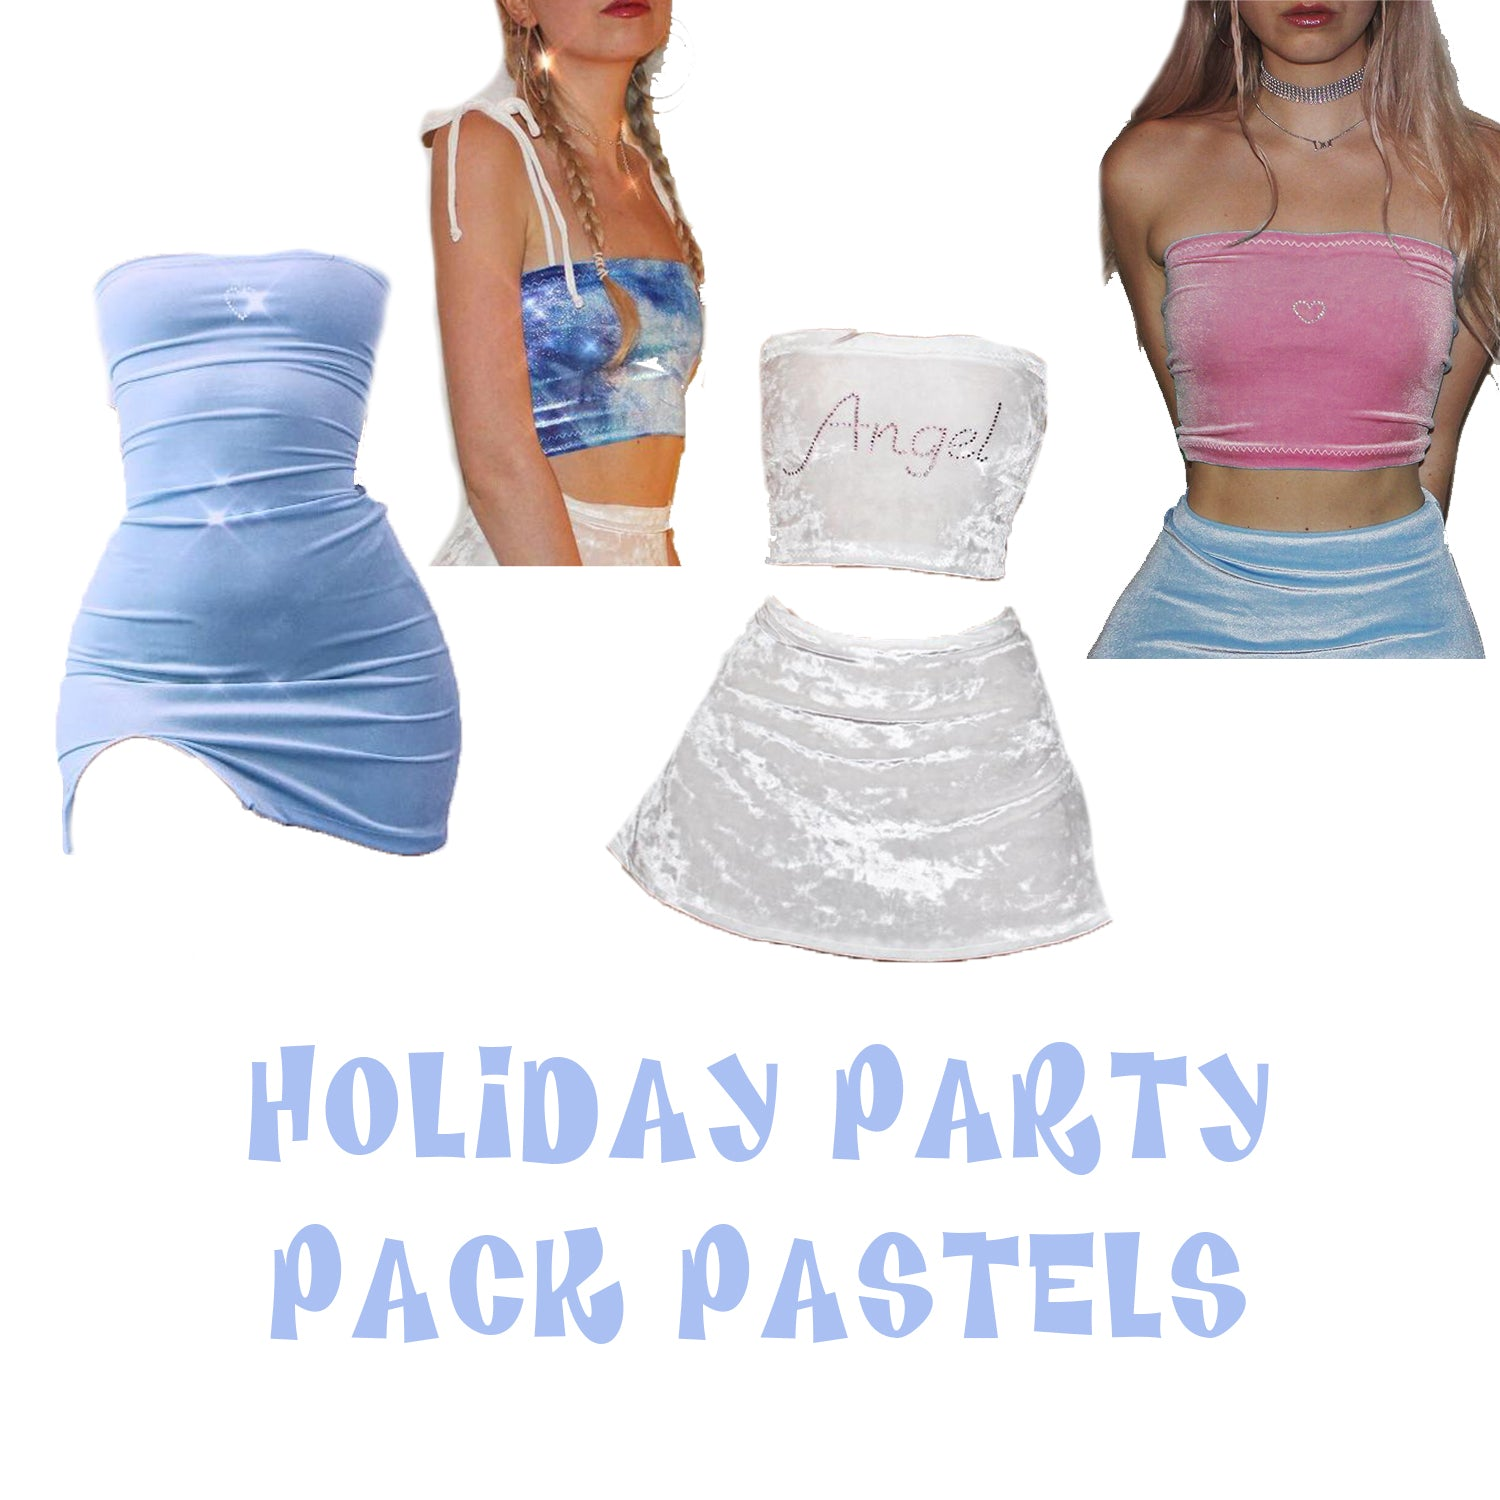 Holiday party Pack Pastels